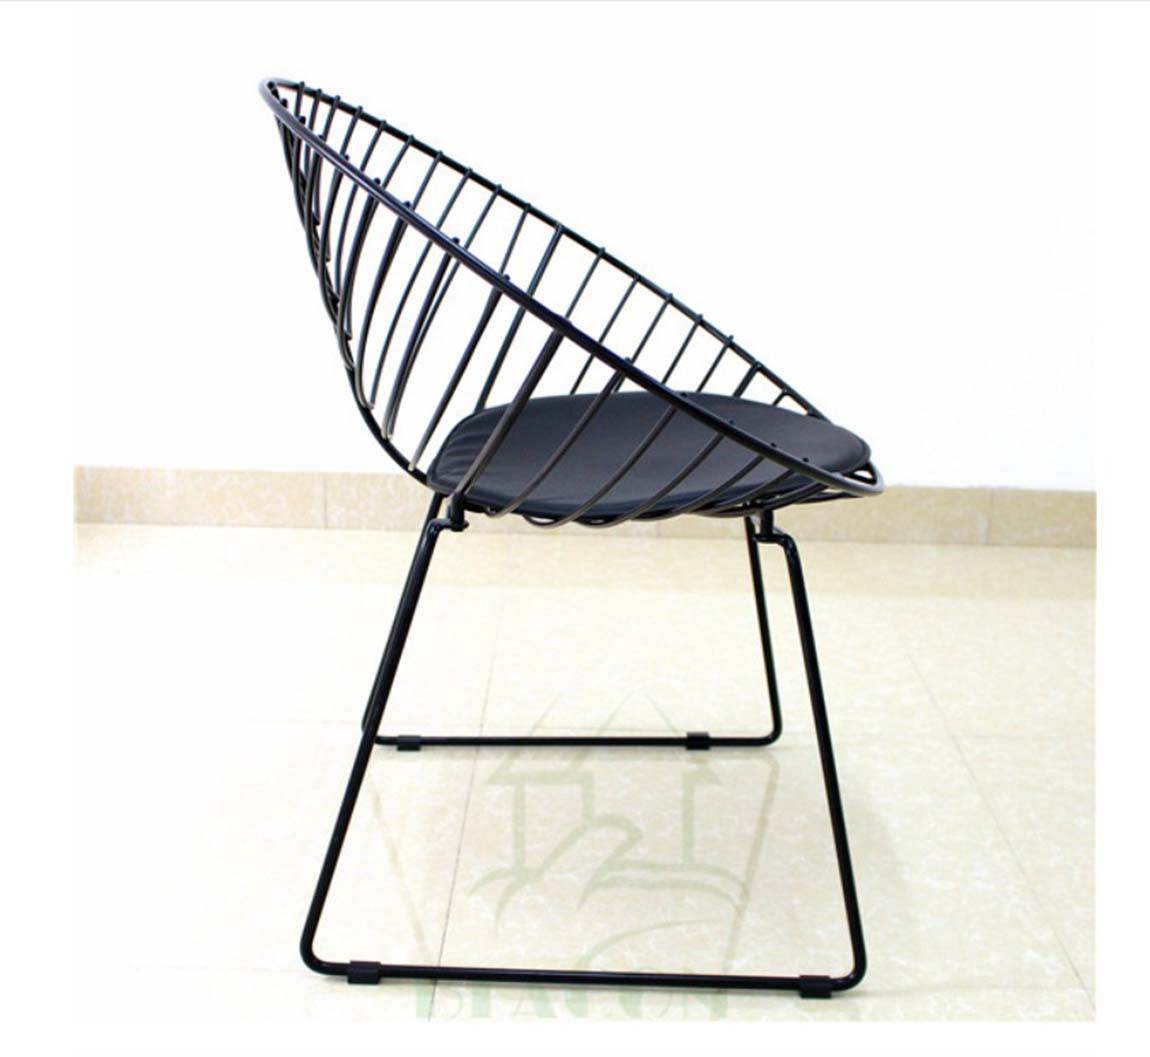 ghe-sat-nghe-thuat-wire-chair-5